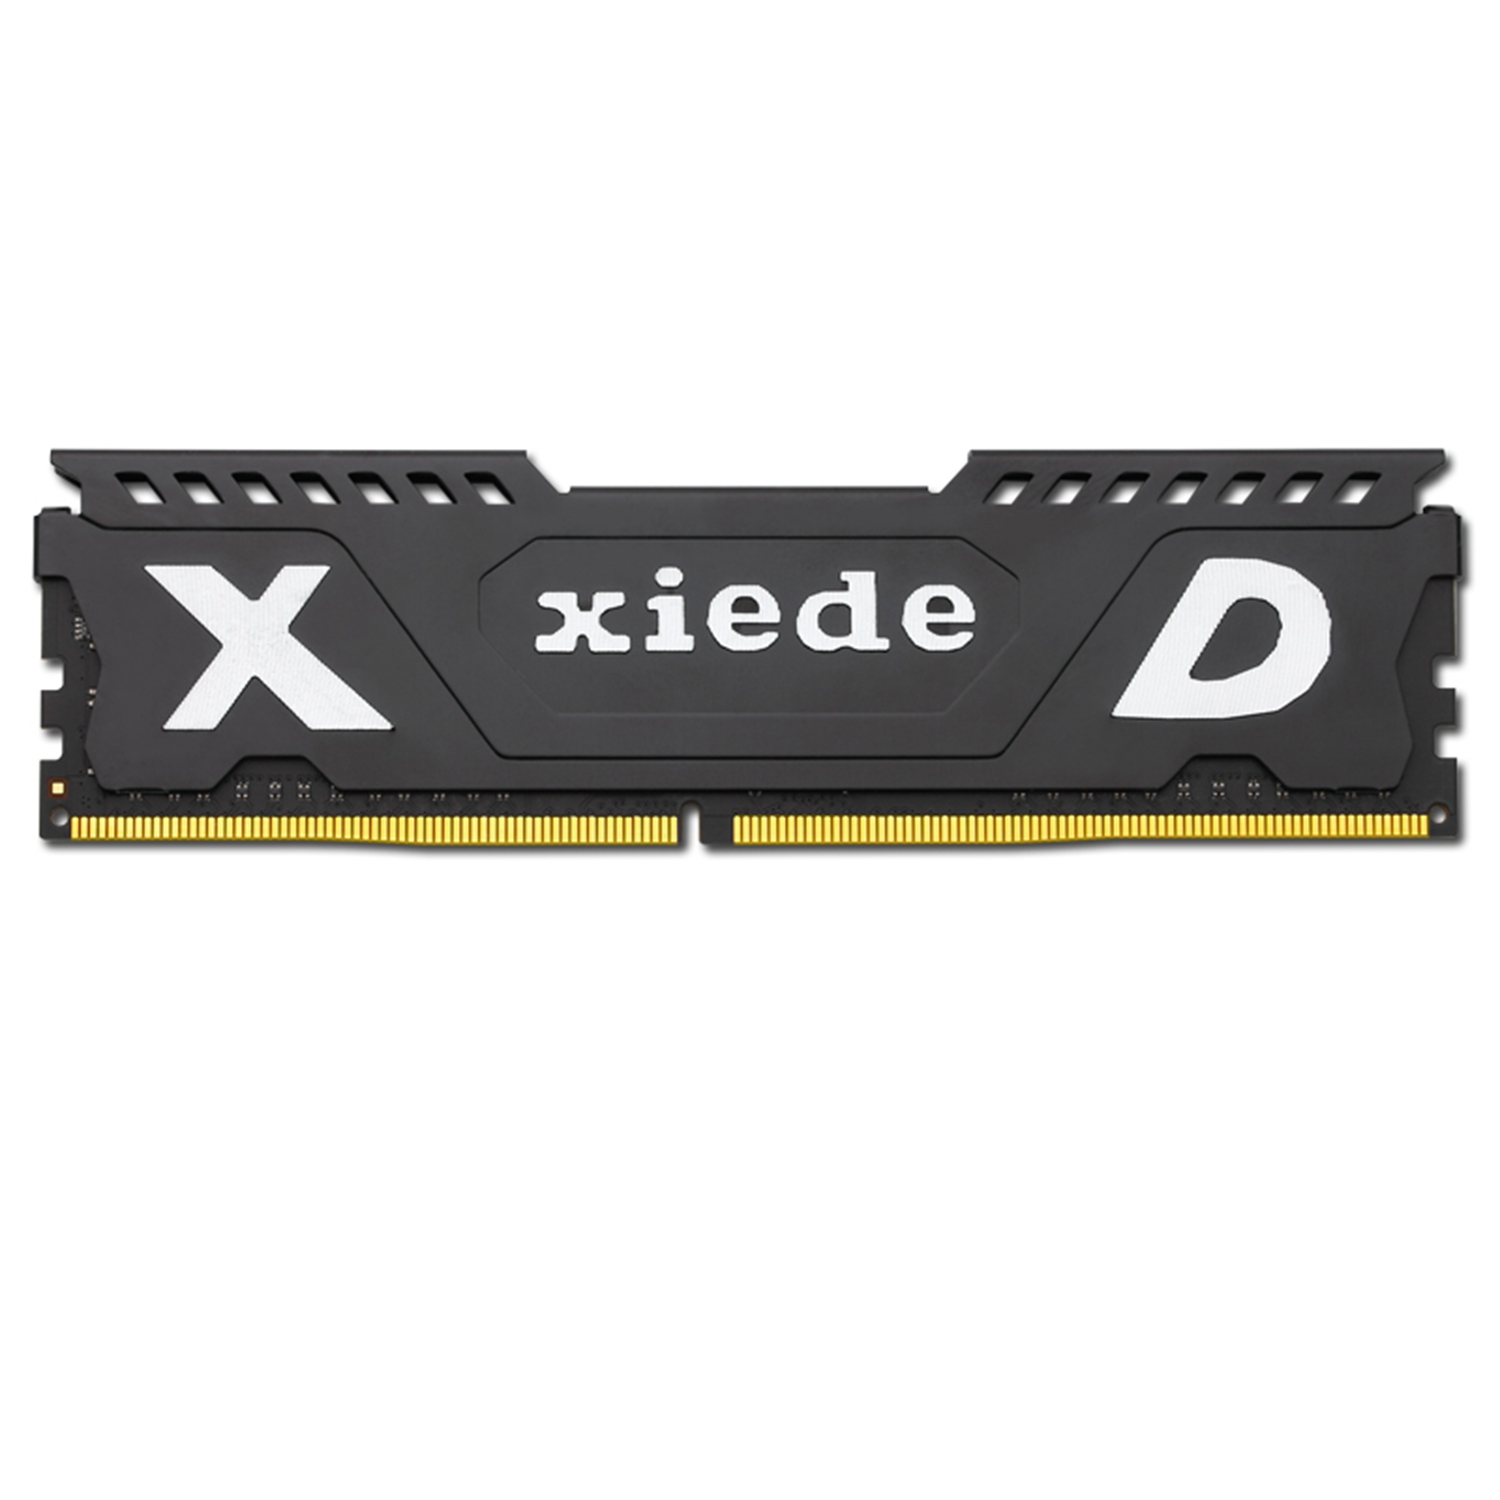 HOT-Xiede Desktop Computer Memory RAM Module <font><b>Ddr3</b></font> <font><b>1600</b></font> <font><b>8GB</b></font> PC3-12800 240Pin <font><b>DIMM</b></font> 1600mhz With Heat Sink For AMD/Inter image